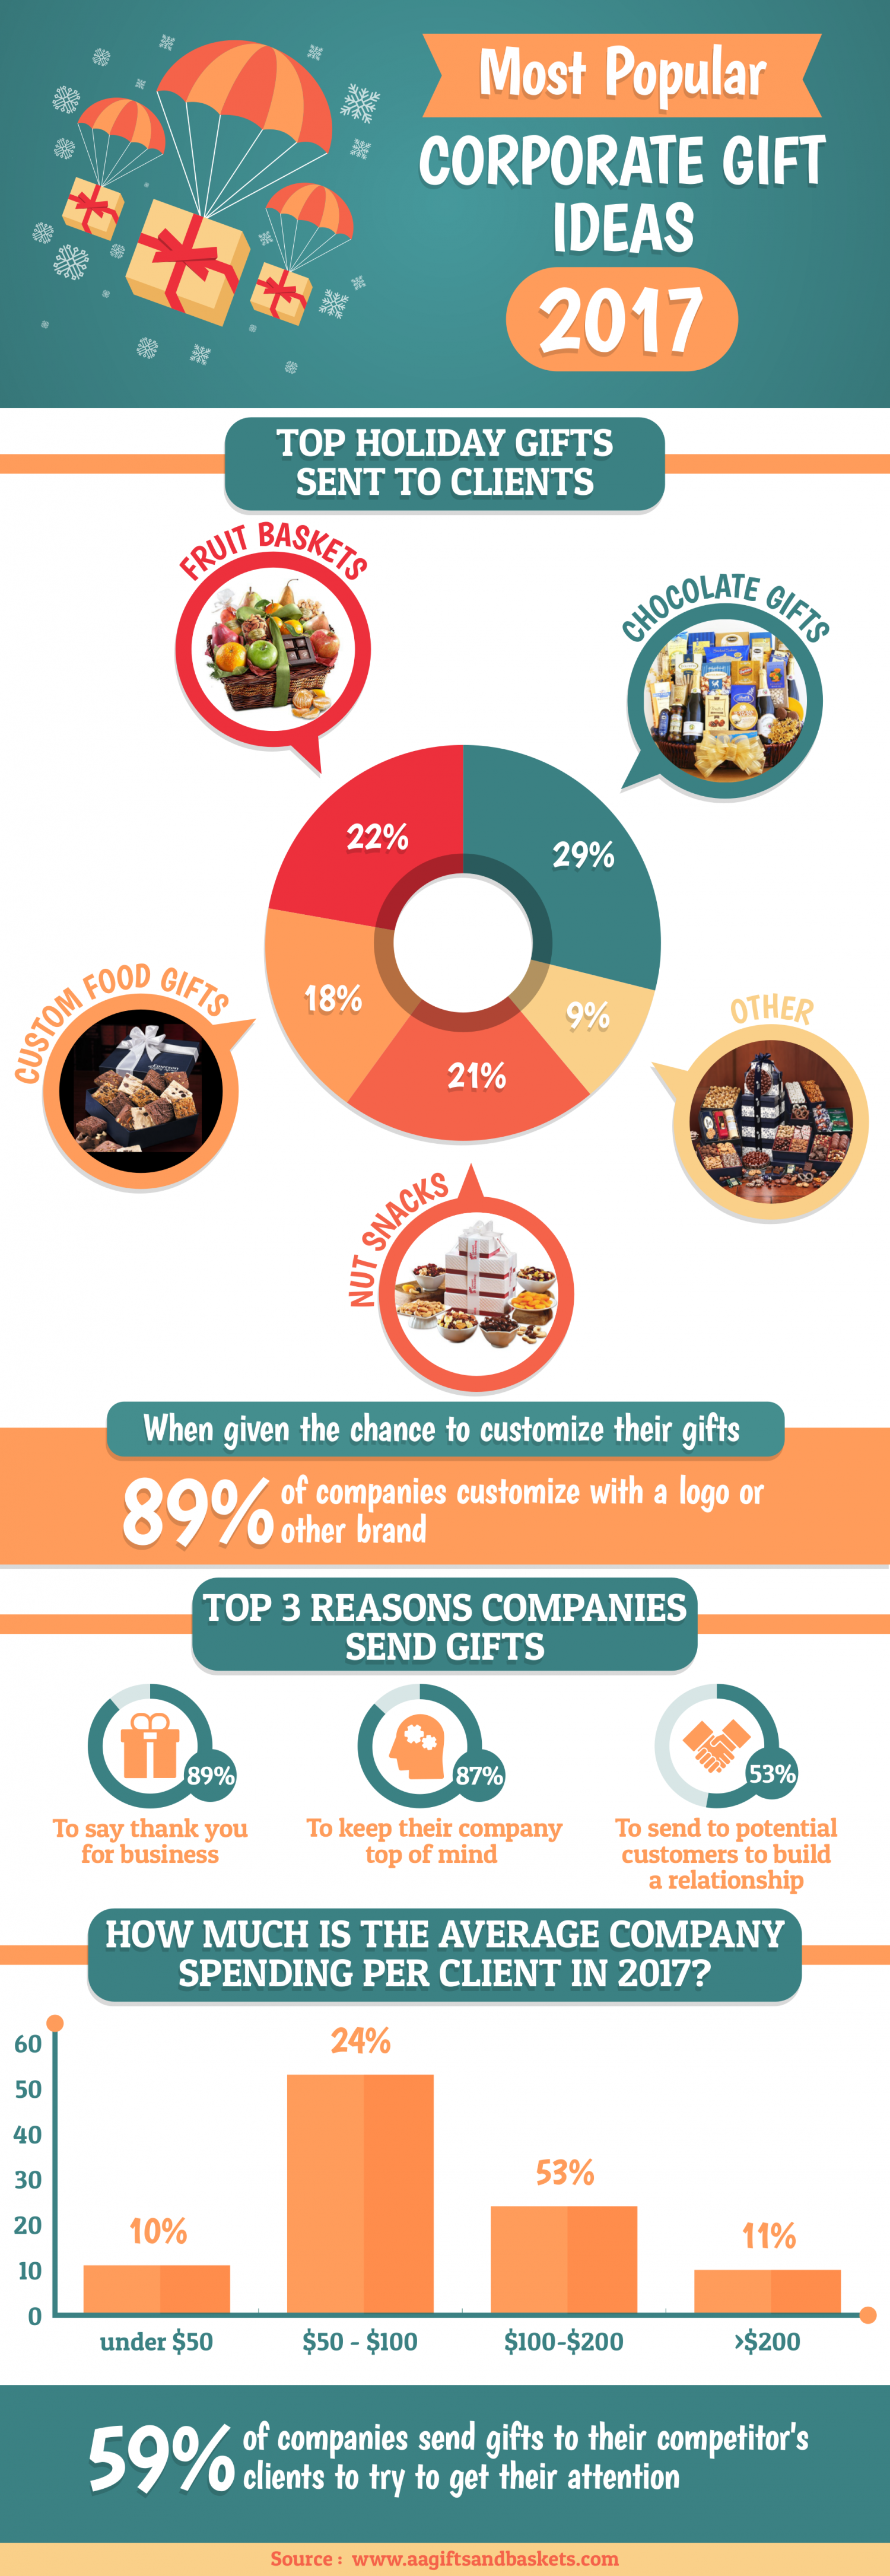 Most Popular Corporate Gift Ideas for 2017 Infographic